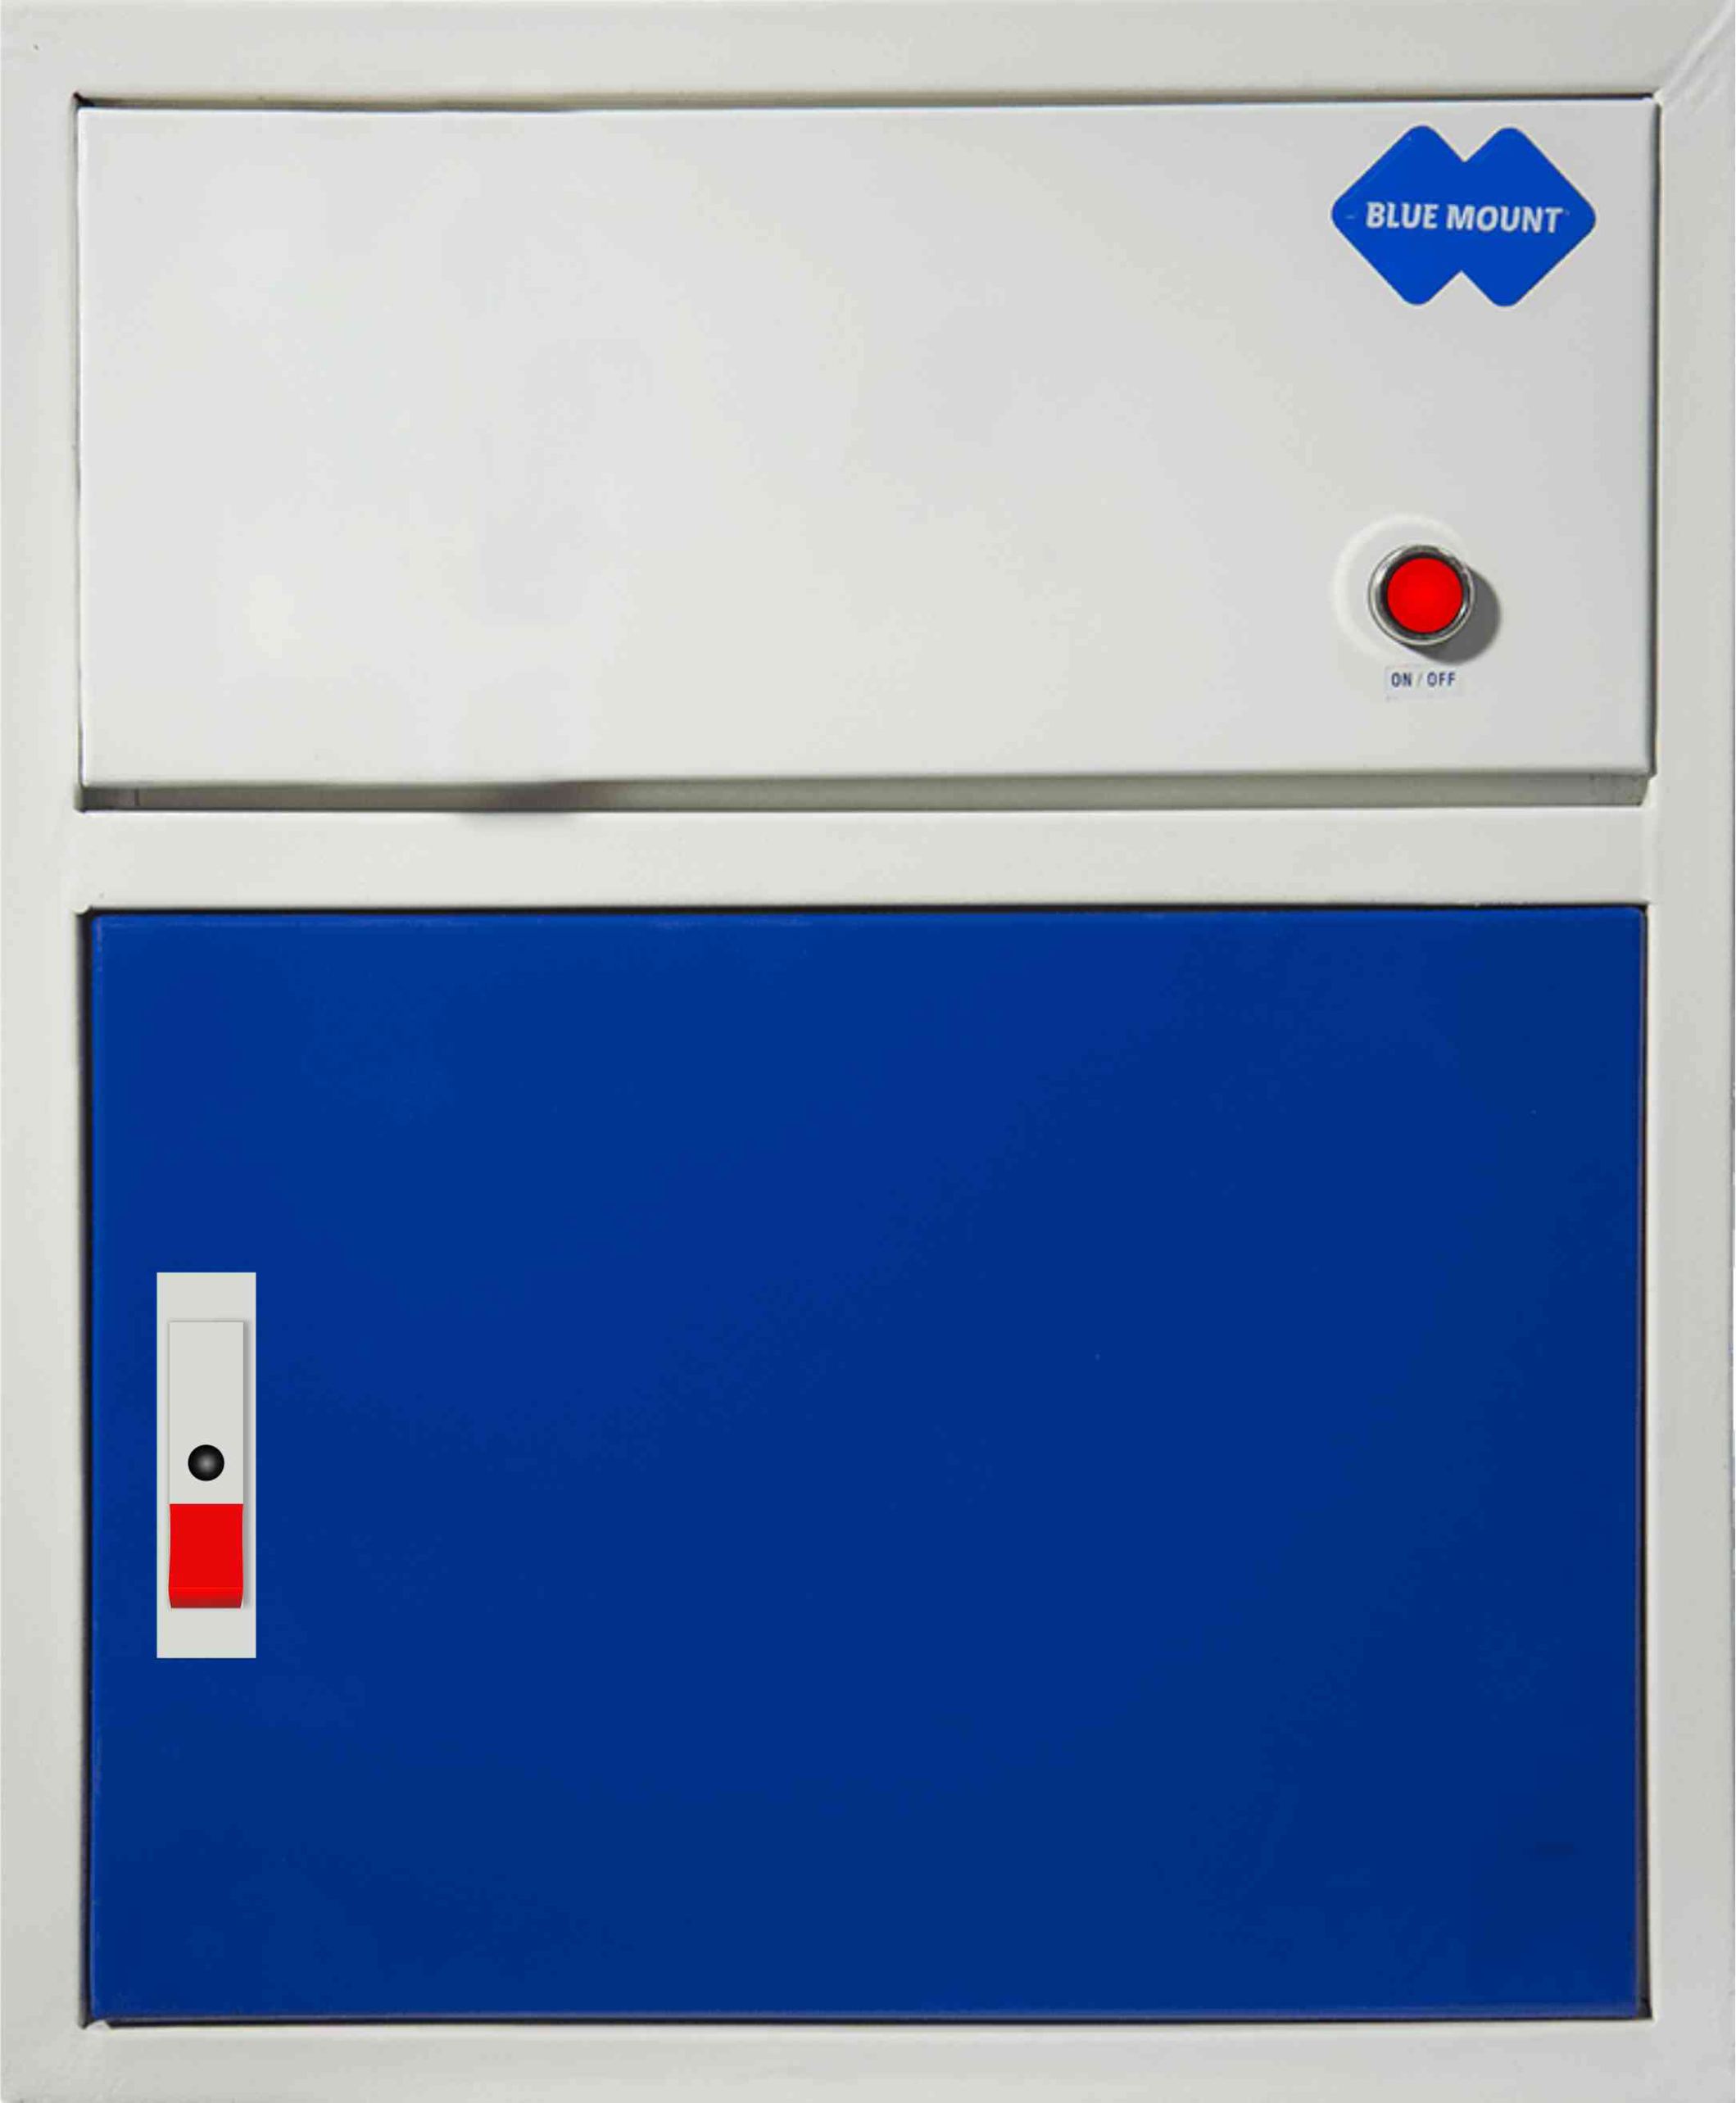 Blue Mount Shine 50 UV Water Purifier